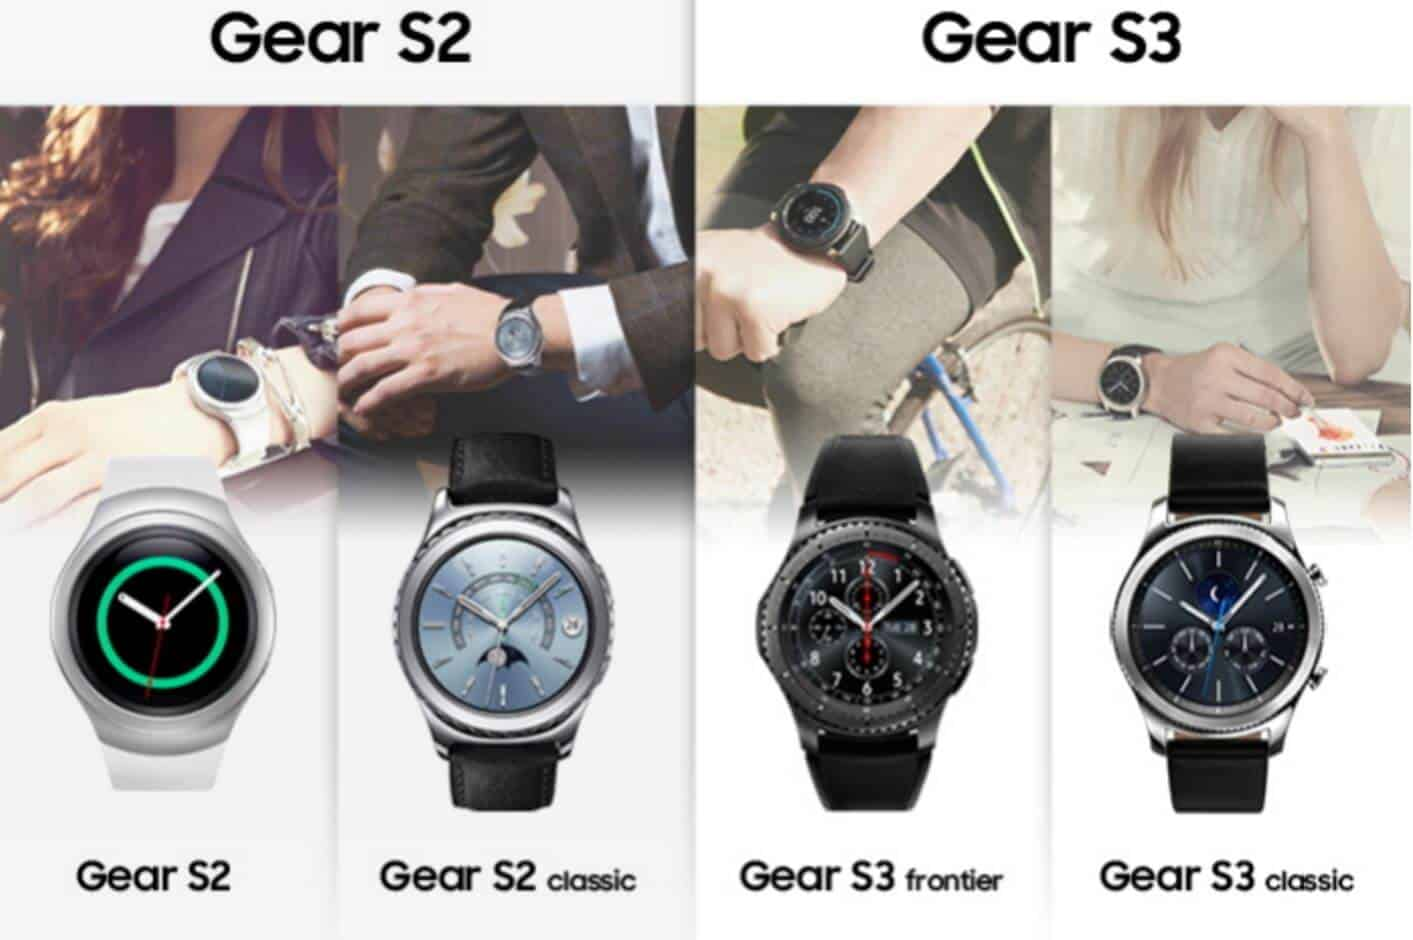 Samsung's Pits Gear S3 Against Gear S2 in Infographic ...